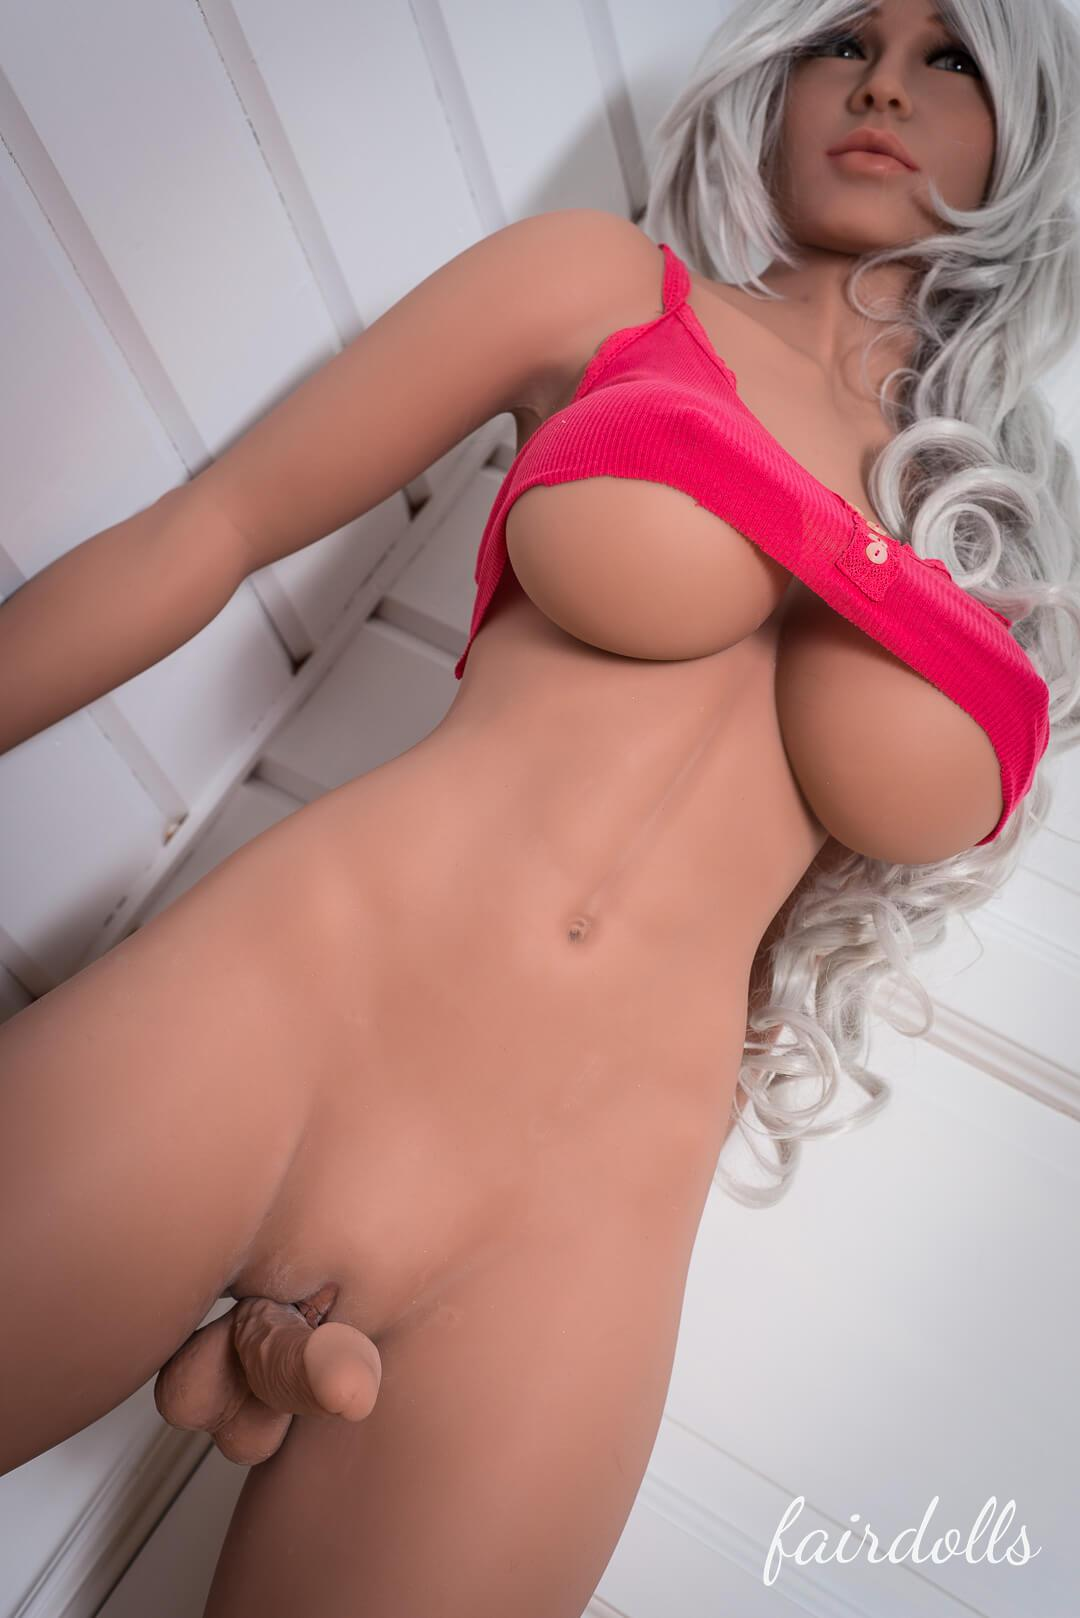 futanari sex doll